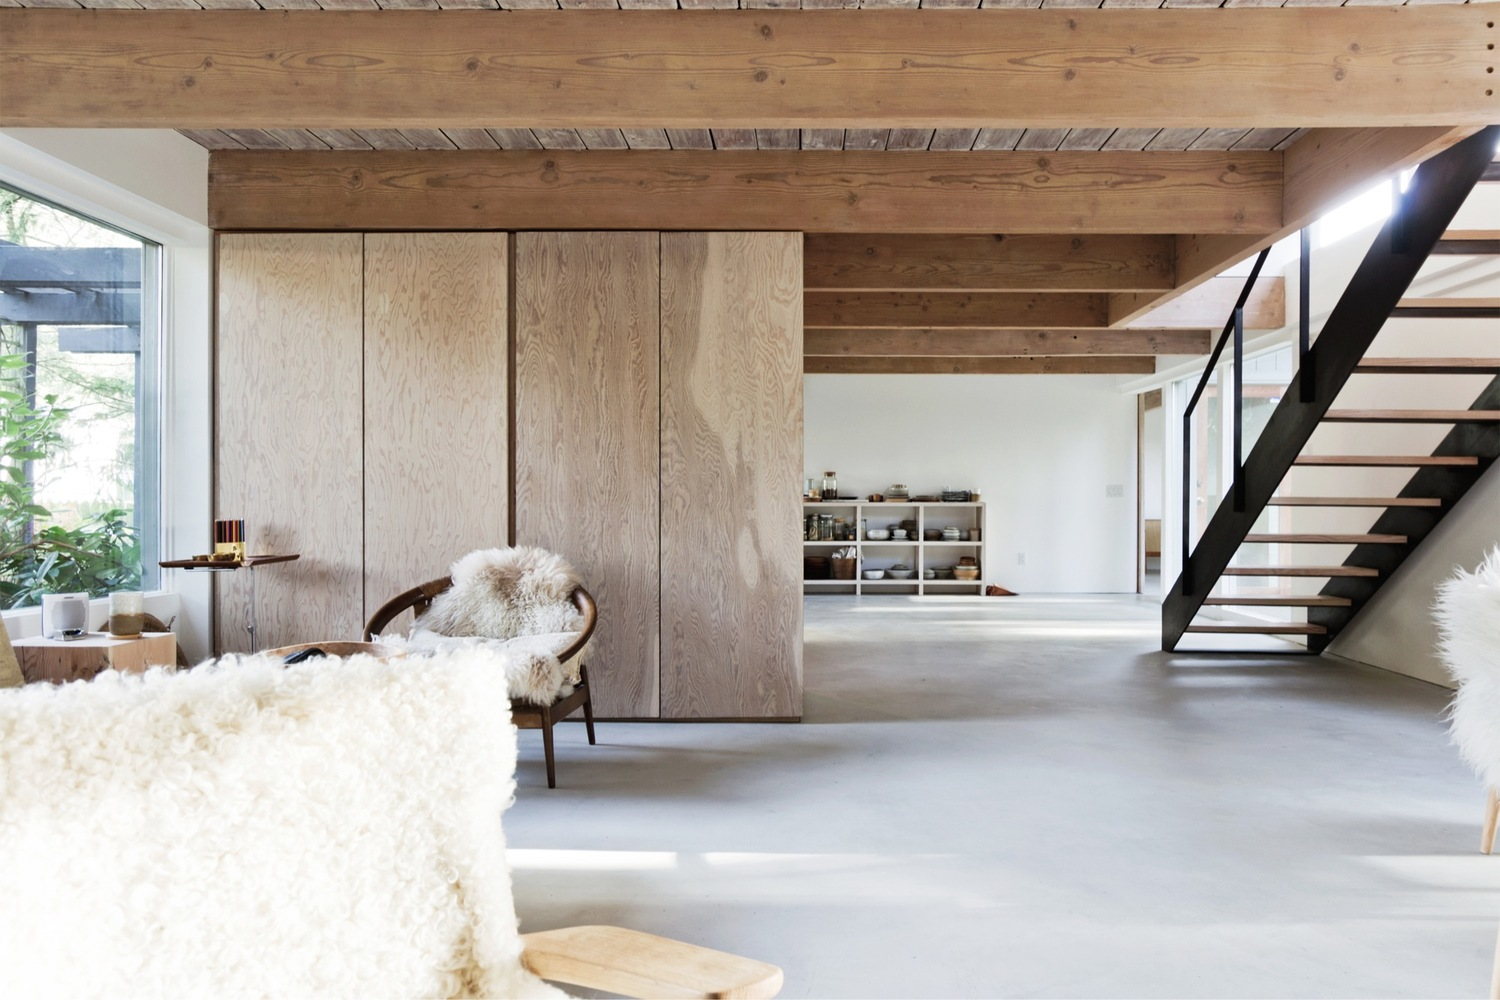 Minimalistisch huis in vancouver vol authenticiteit   interior junkie